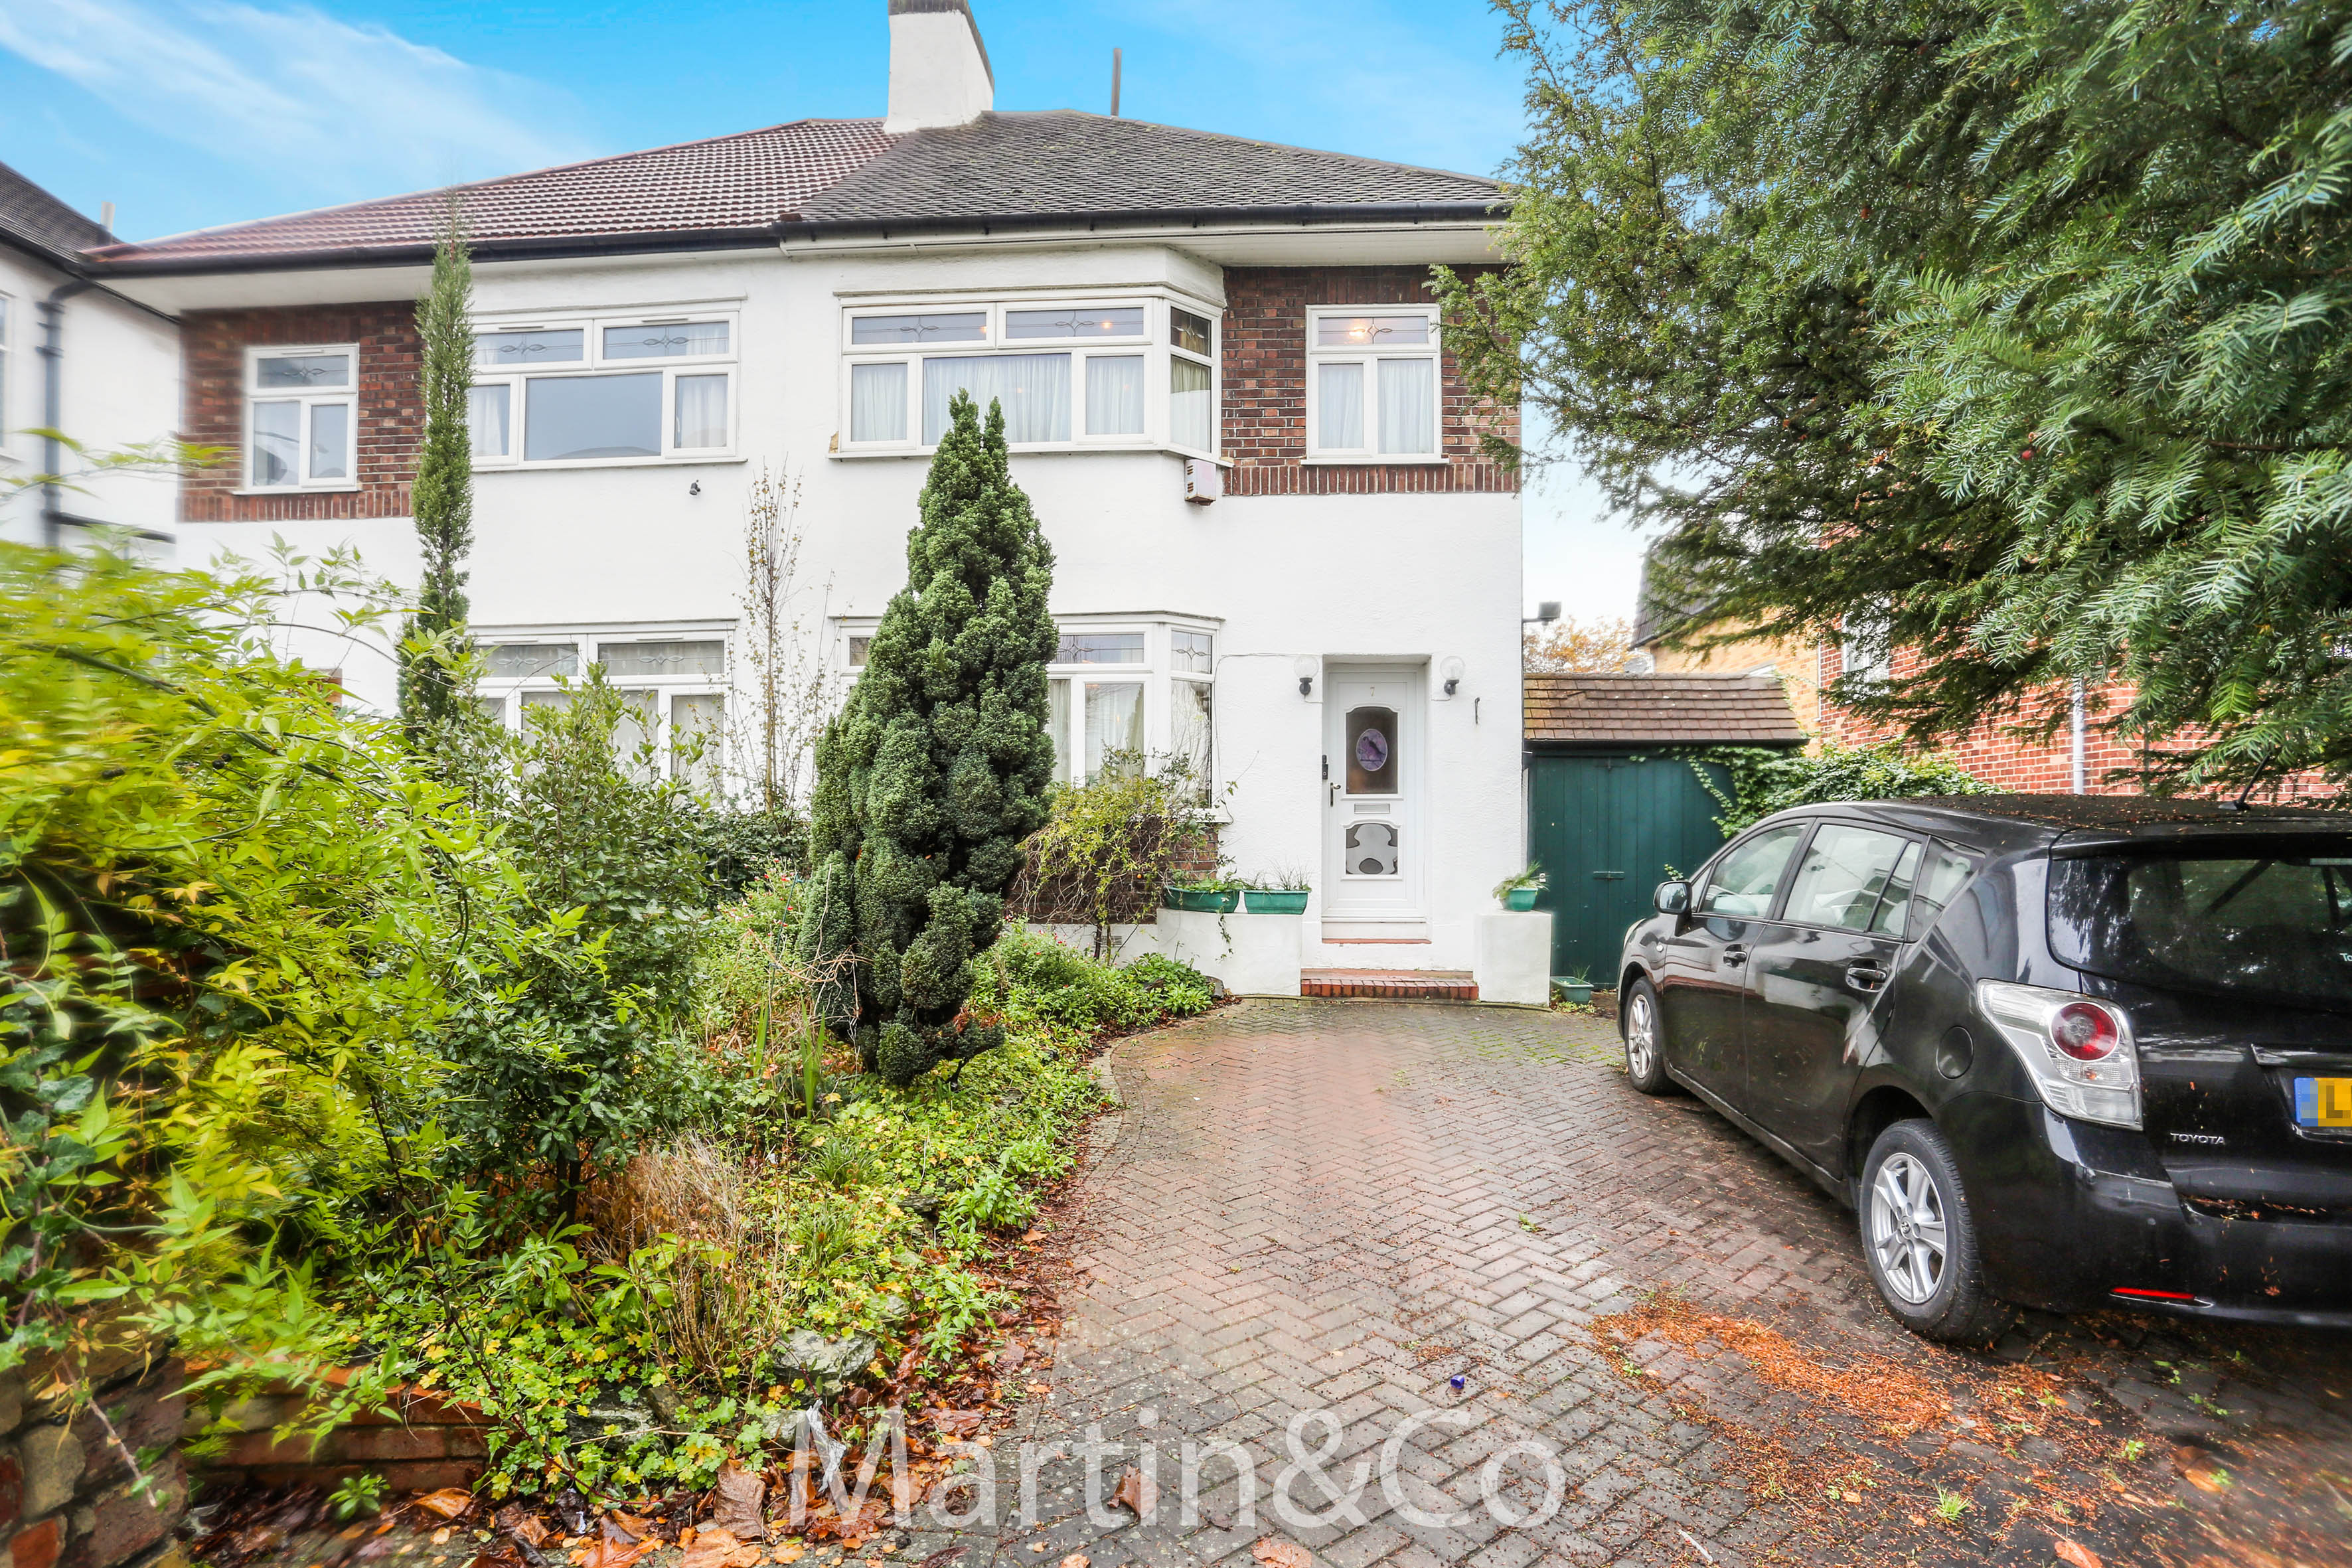 Ringstead Road, Sutton, SM1